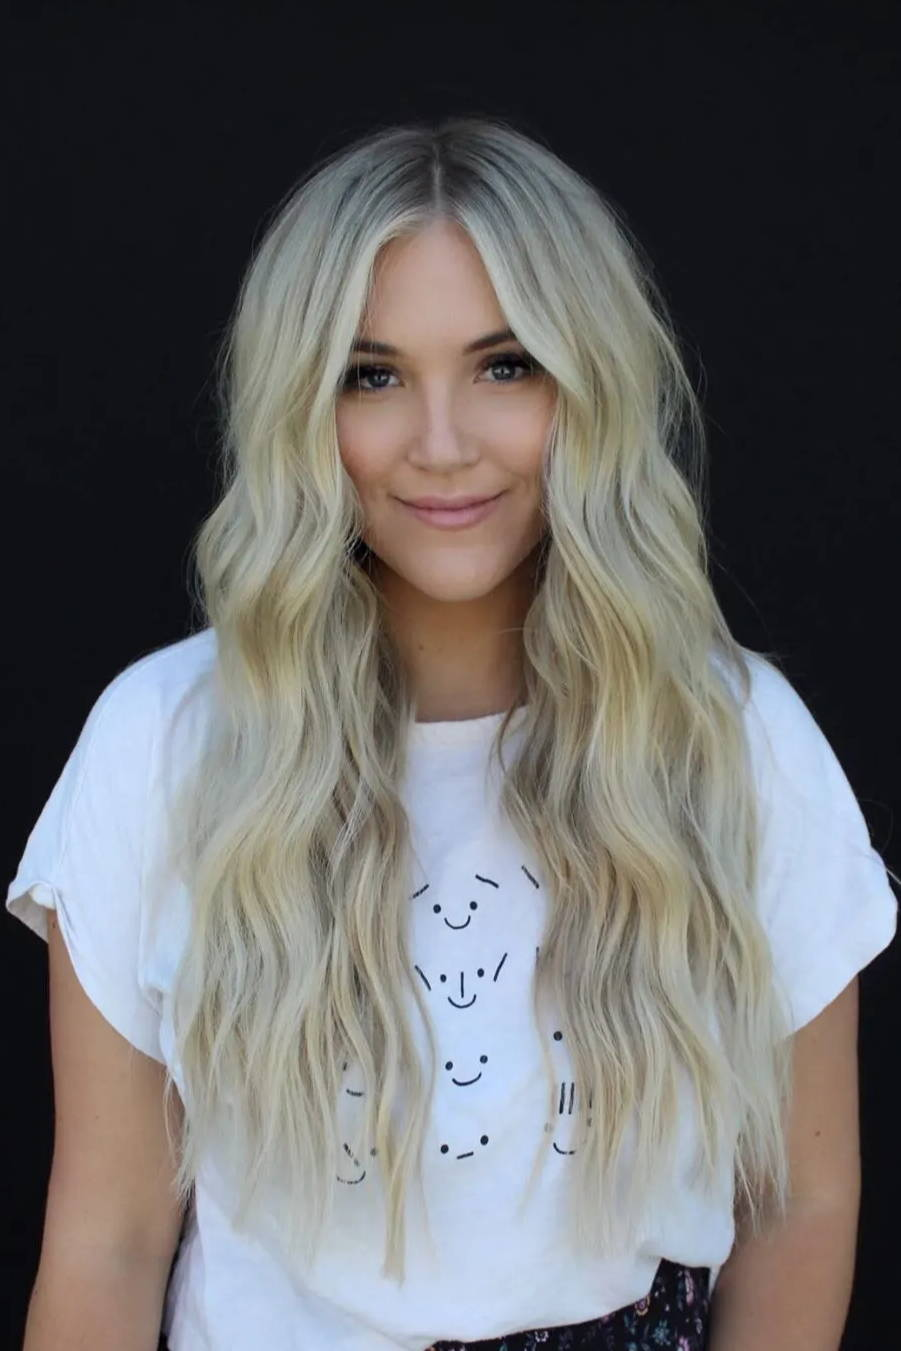 Beautiful women smiling and showing her platinum blonde hair extensions